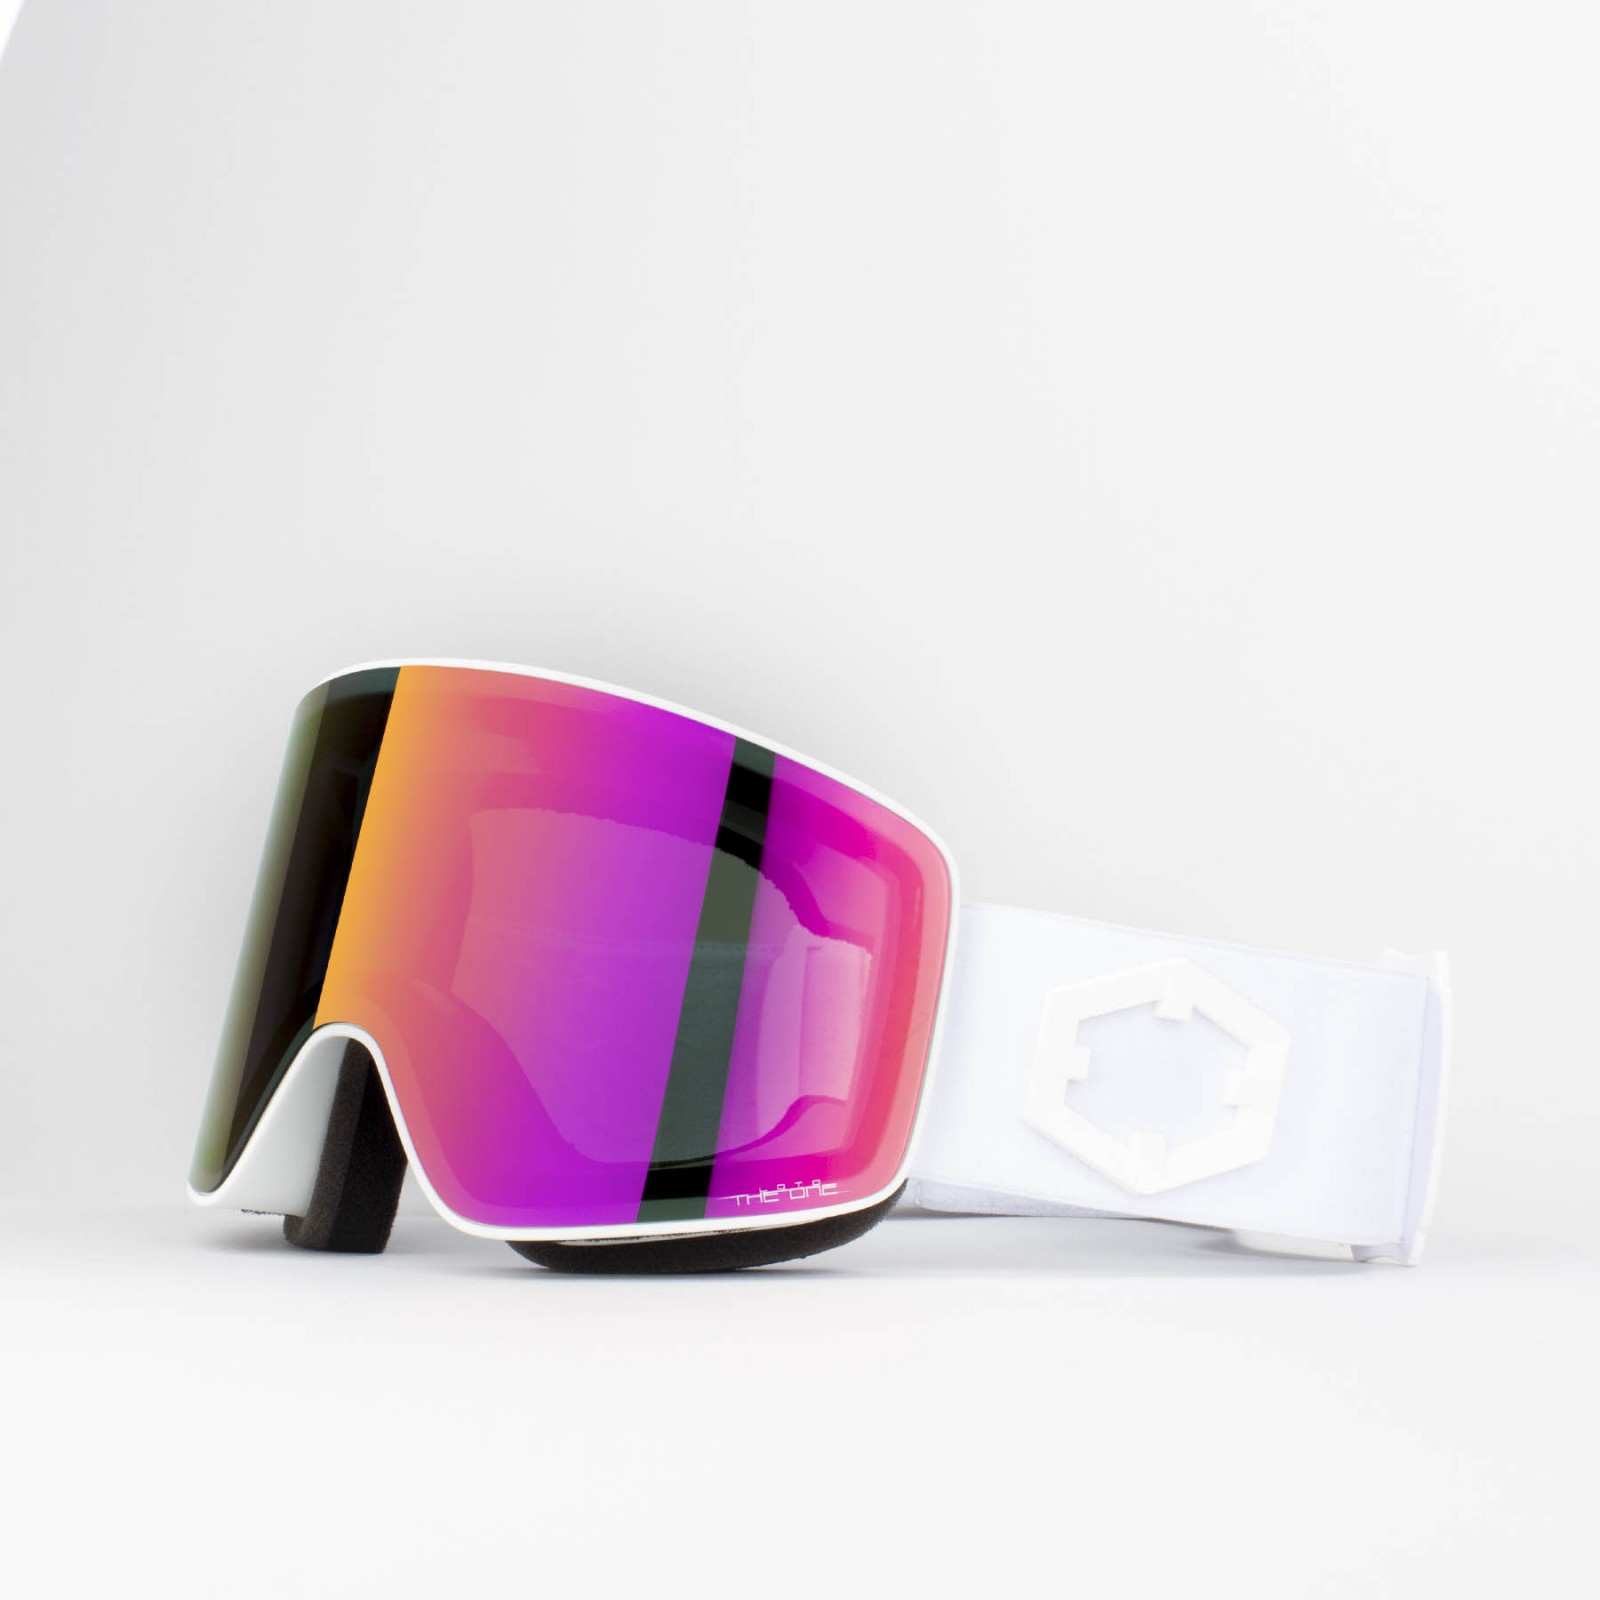 Void White The One Loto goggle